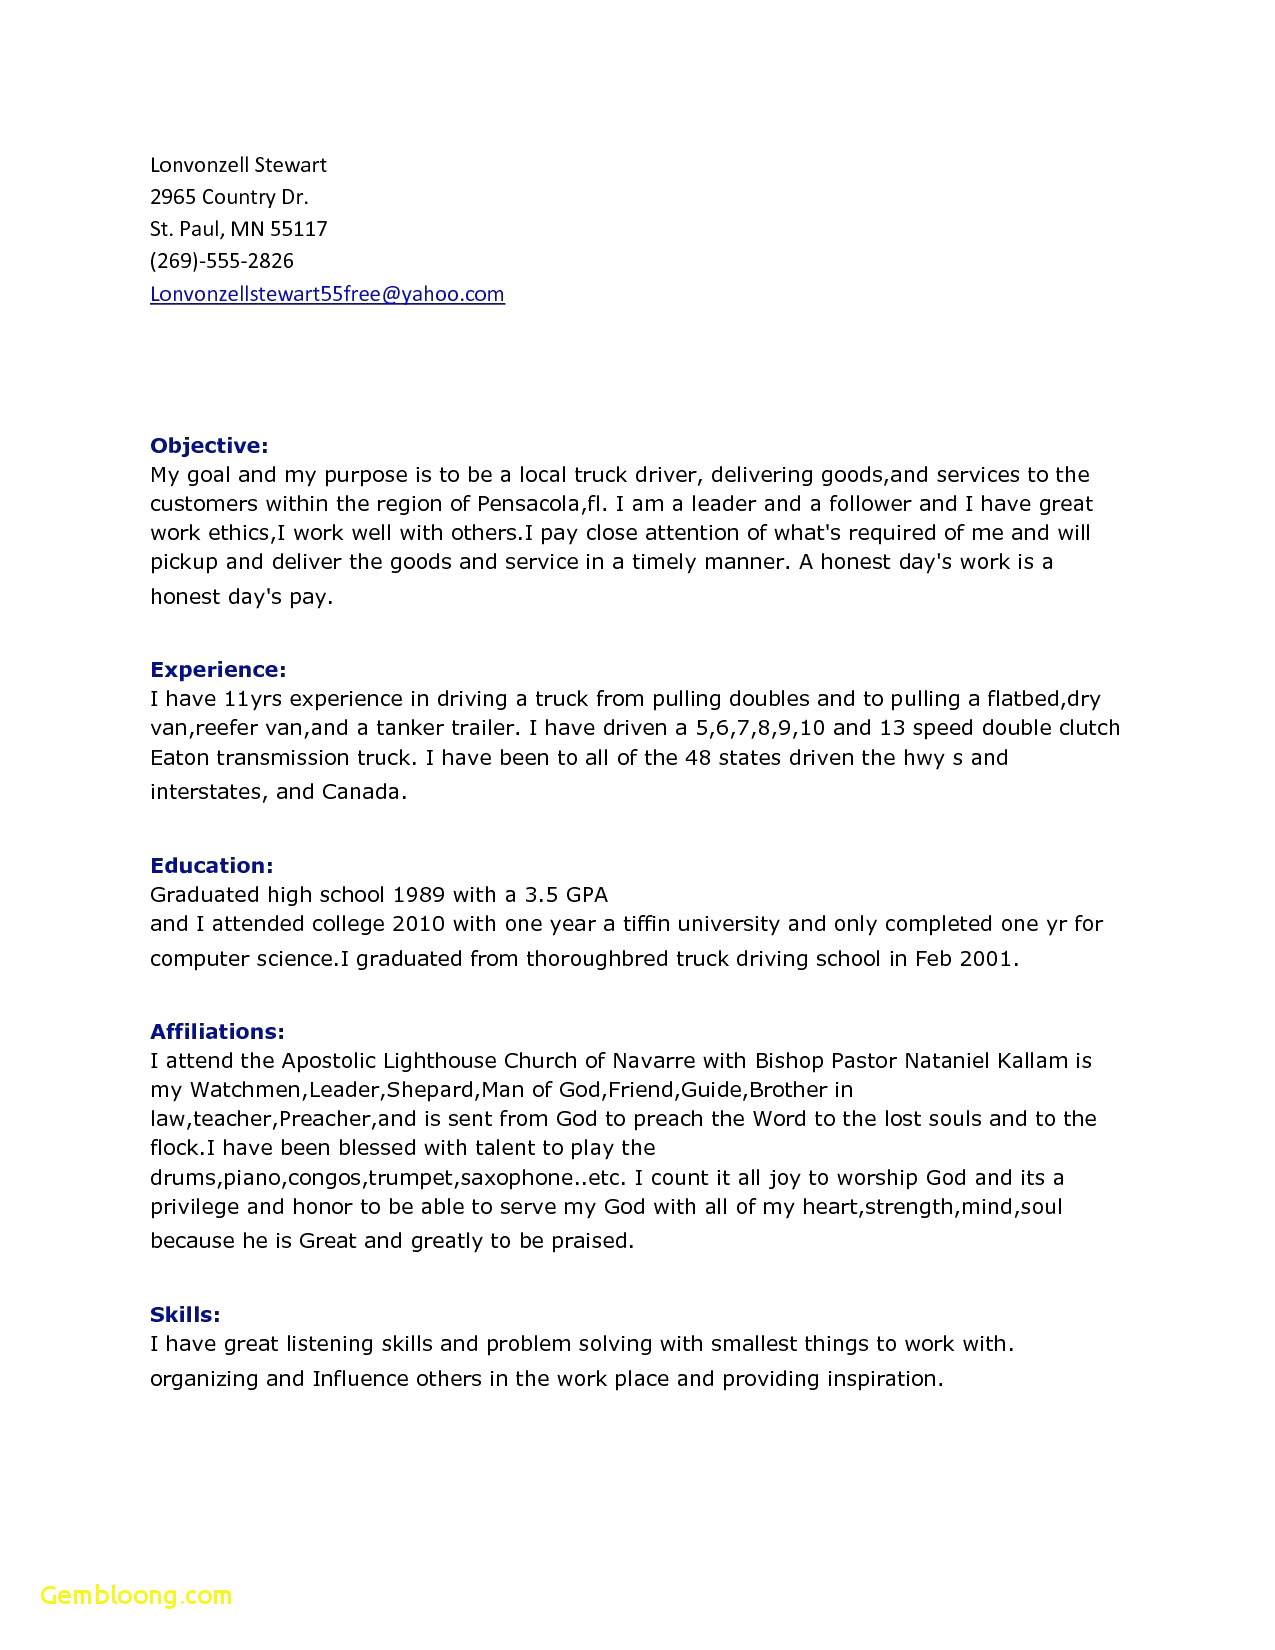 Delivery Driver Resume Sample - 61 Awesome Truck Driver Resume